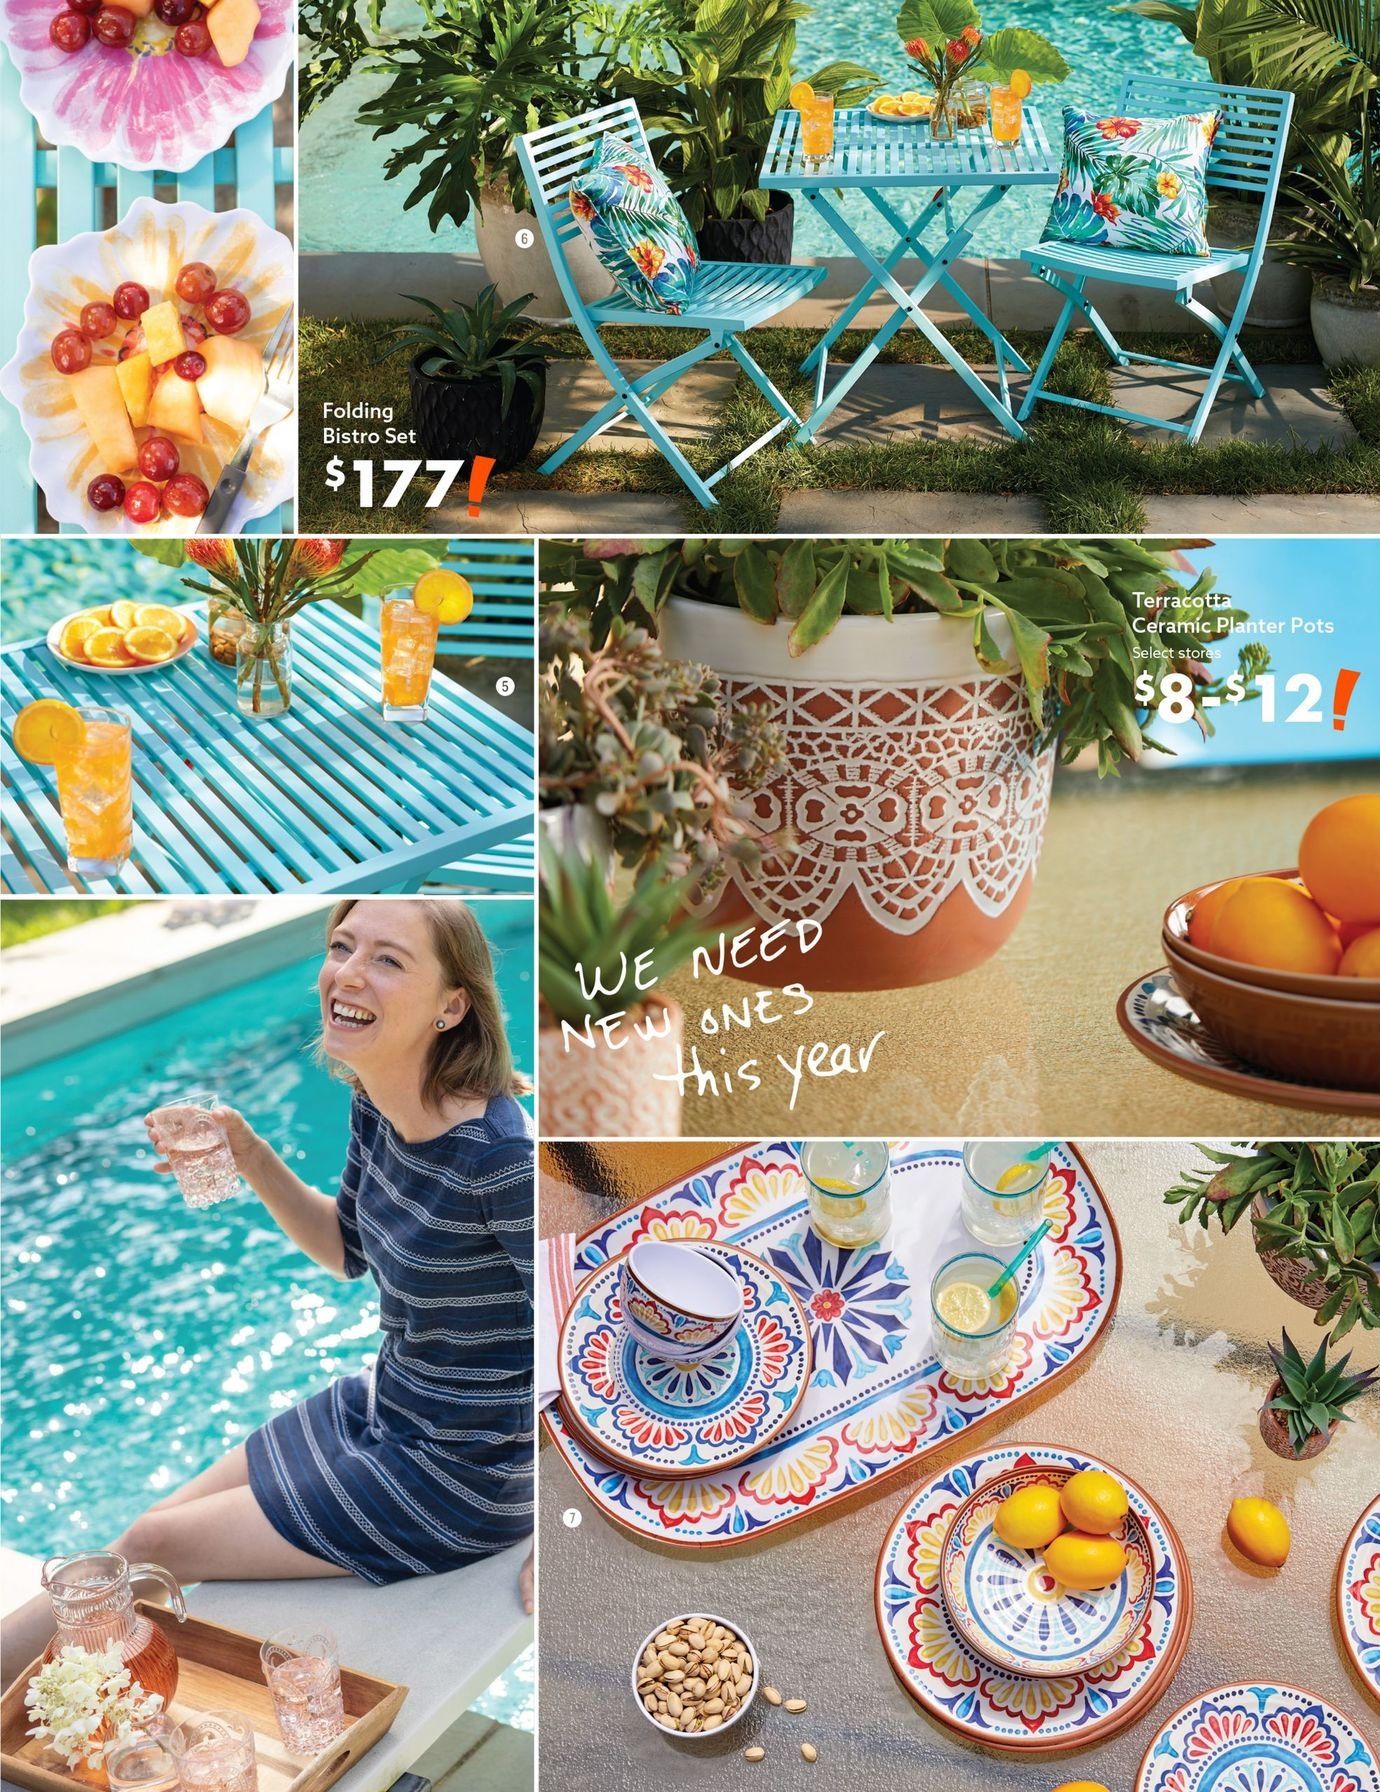 Big Lots Weekly January 19 - July 31, 2020 Page 29